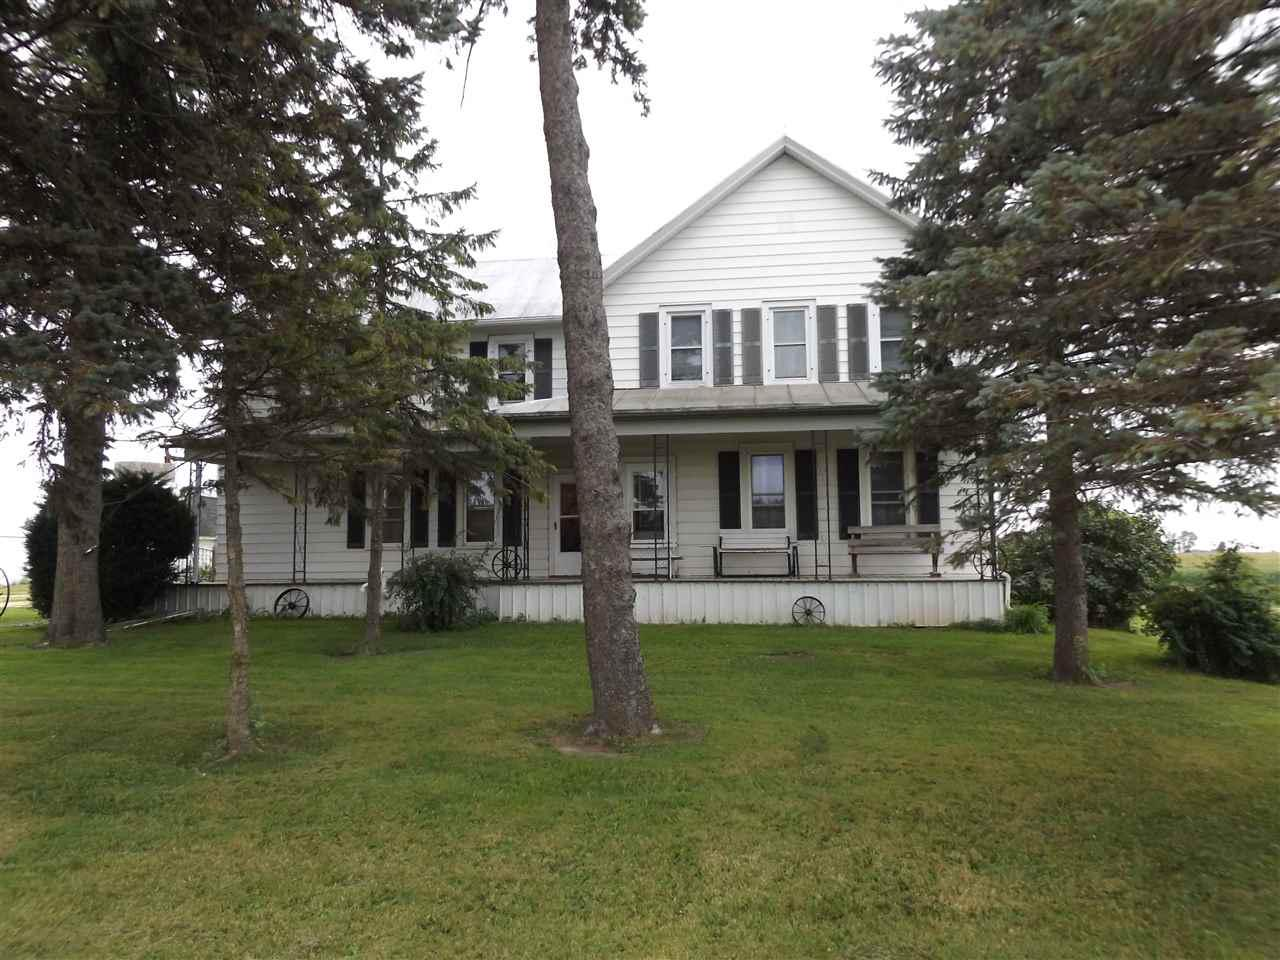 Great opportunity to own a hobby farm!  Great Town of Brillion property with 8.06 acres of partial woods & open land.  Featuring a barn, pole shed & creek. Spacious 2 story home, 2796 sq ft., with a large eat in kitchen, living room, family room, 1st floor bdrm, office(could be a bdrm) & full bath. Upstairs offers a half bath & 4/5 more bedrooms, great potential upstairs with a little tlc.